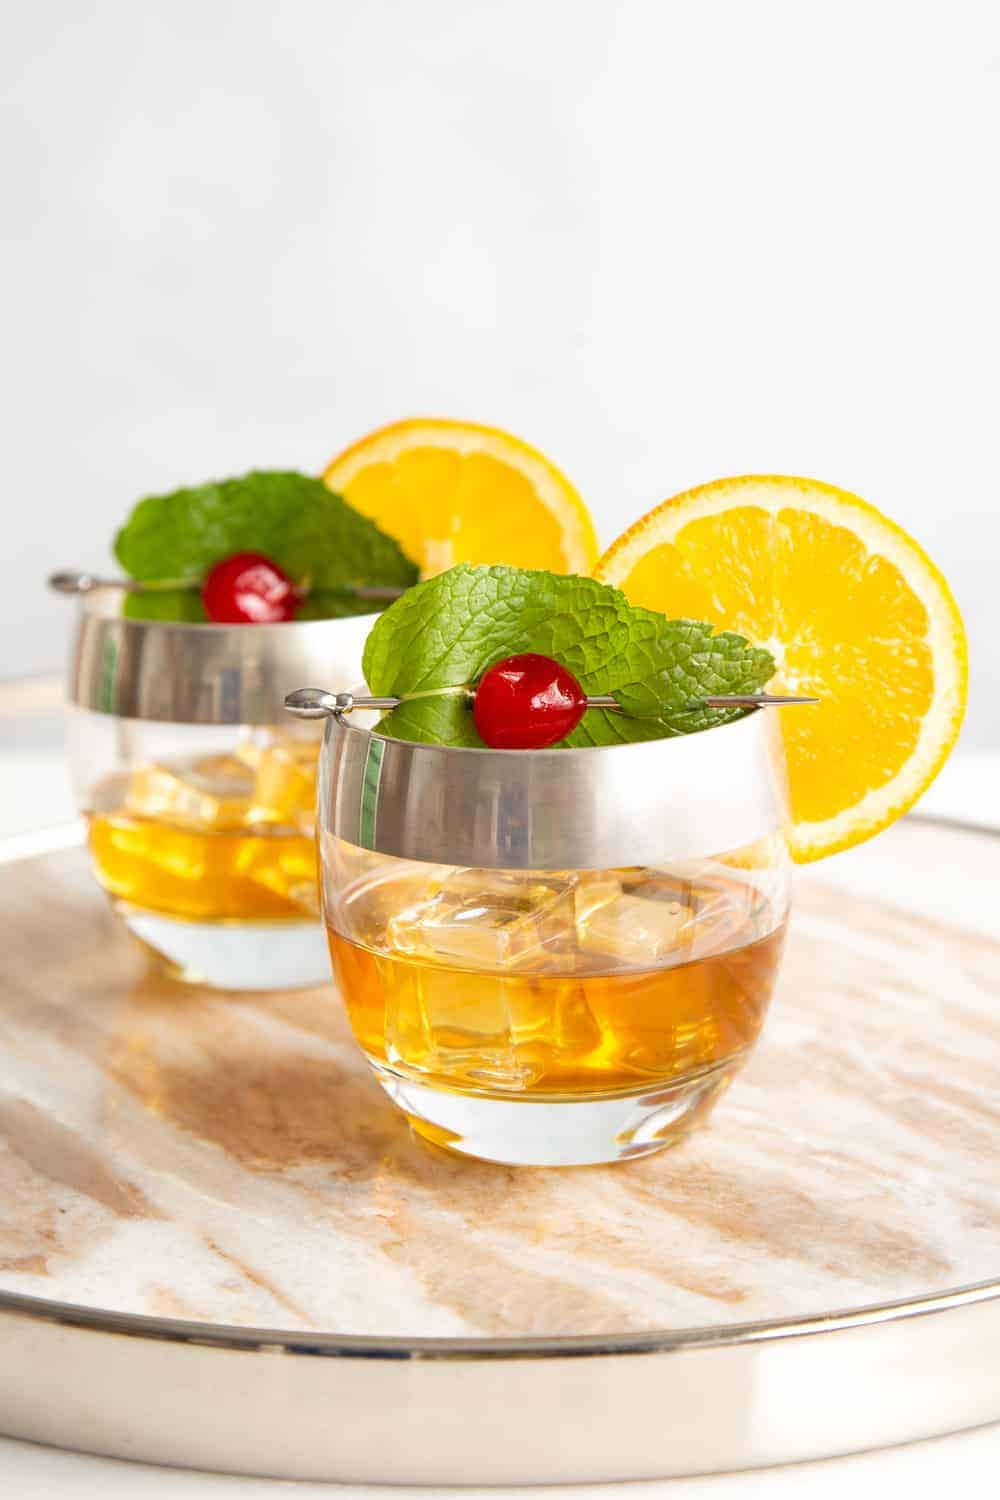 The New Fashioned Cocktail: An Old Fashioned with Fresh Mint